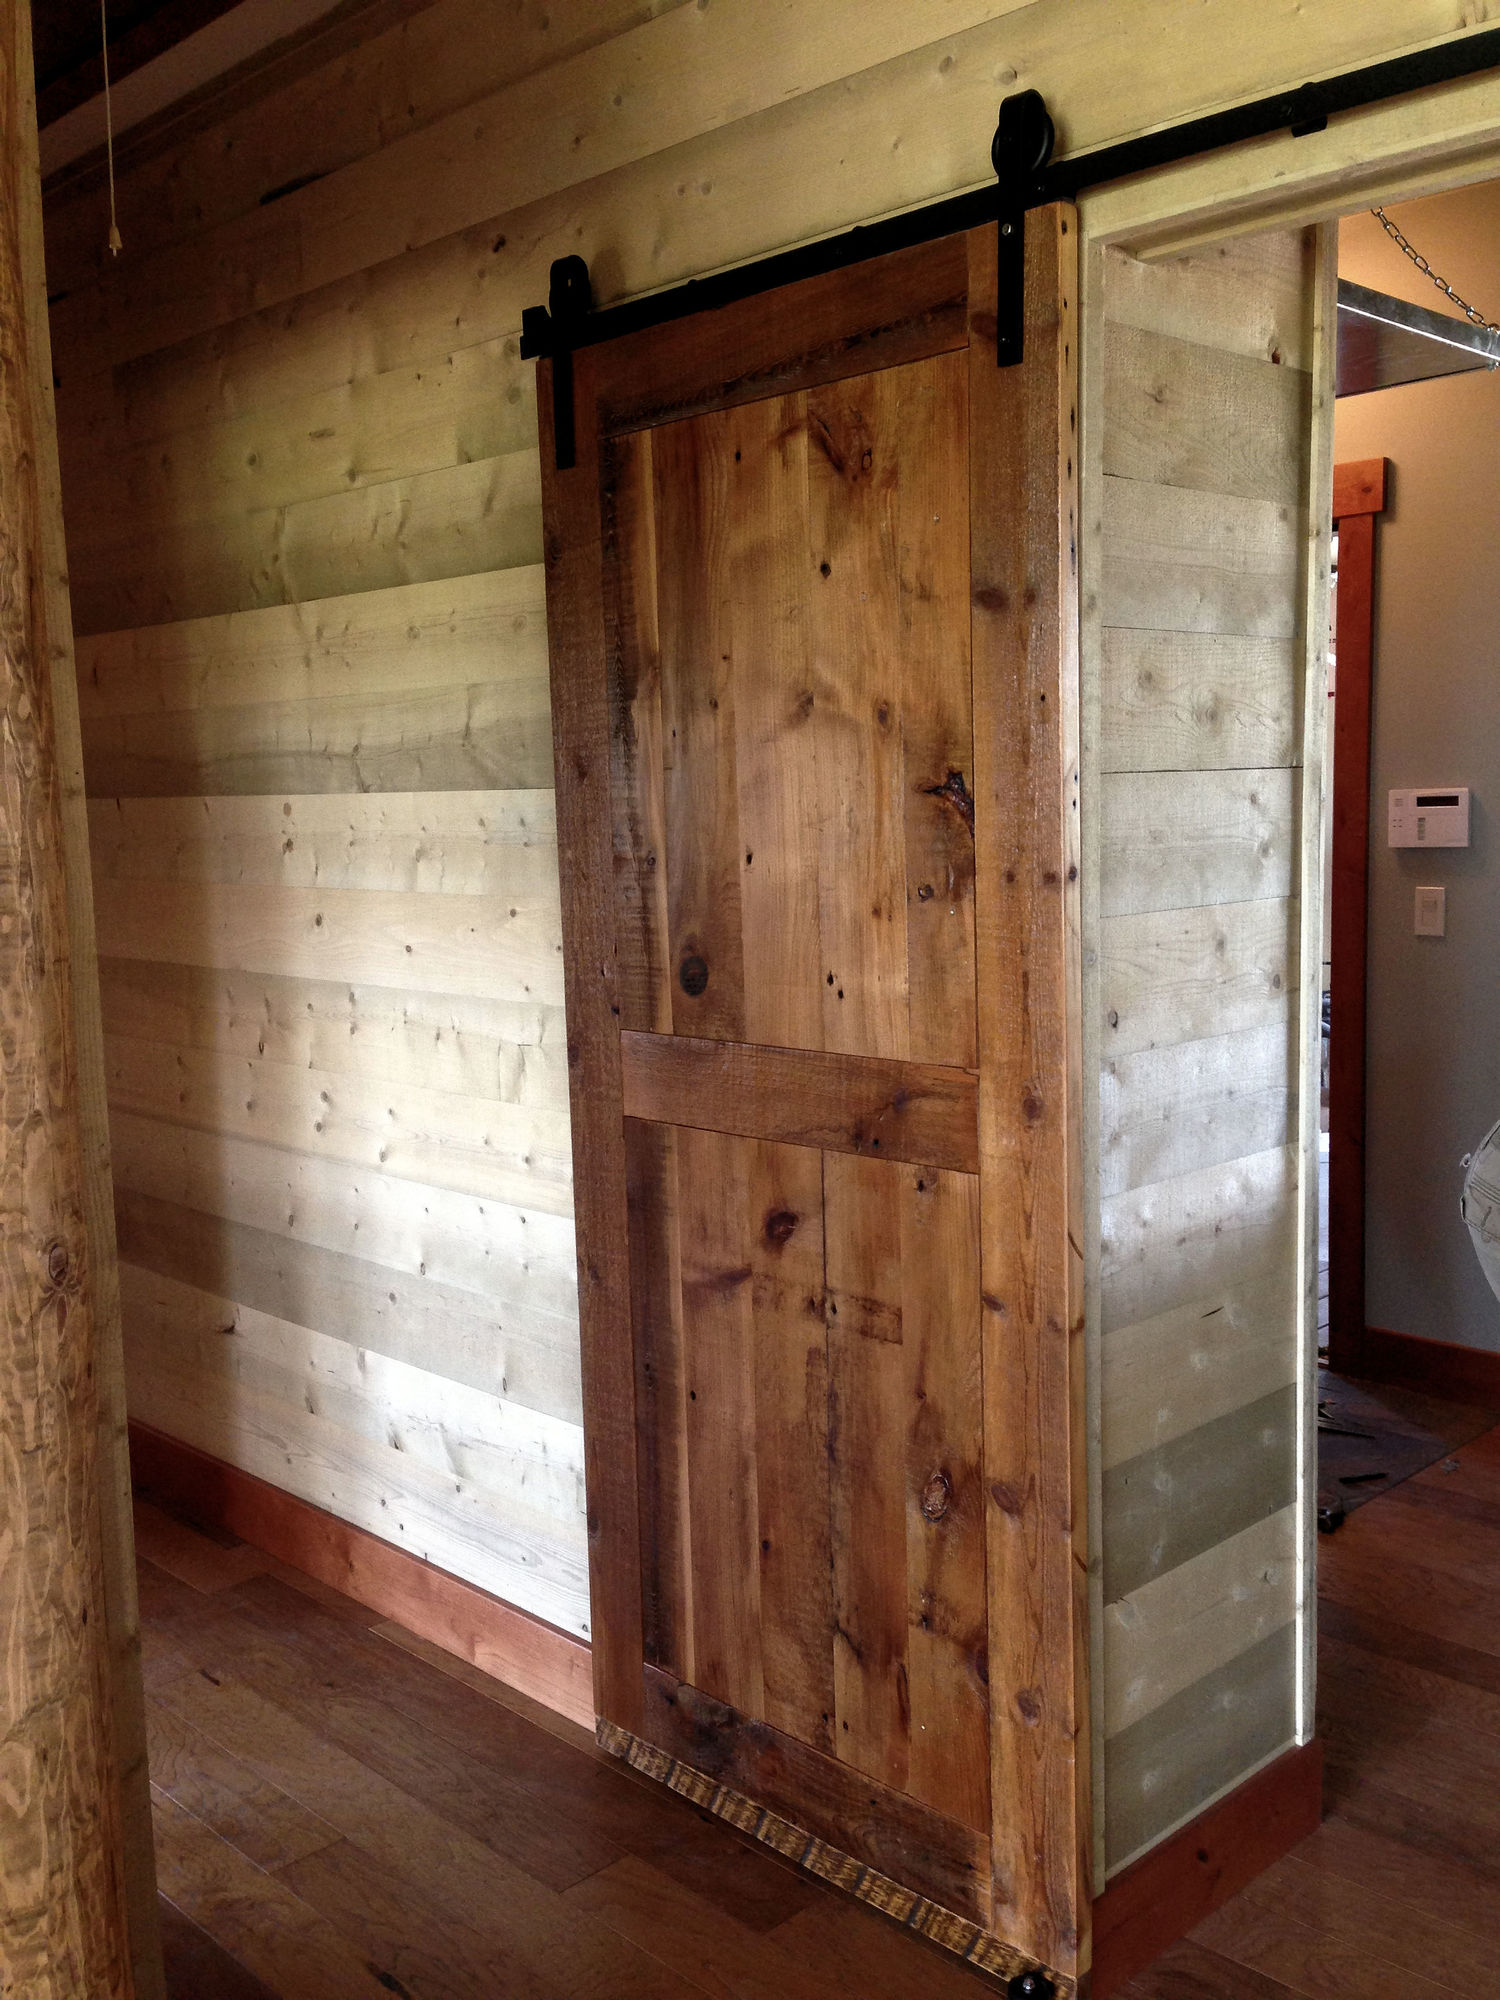 saudireiki door system sliding exquisite track reclaimed barns barn designs interior doors l uk